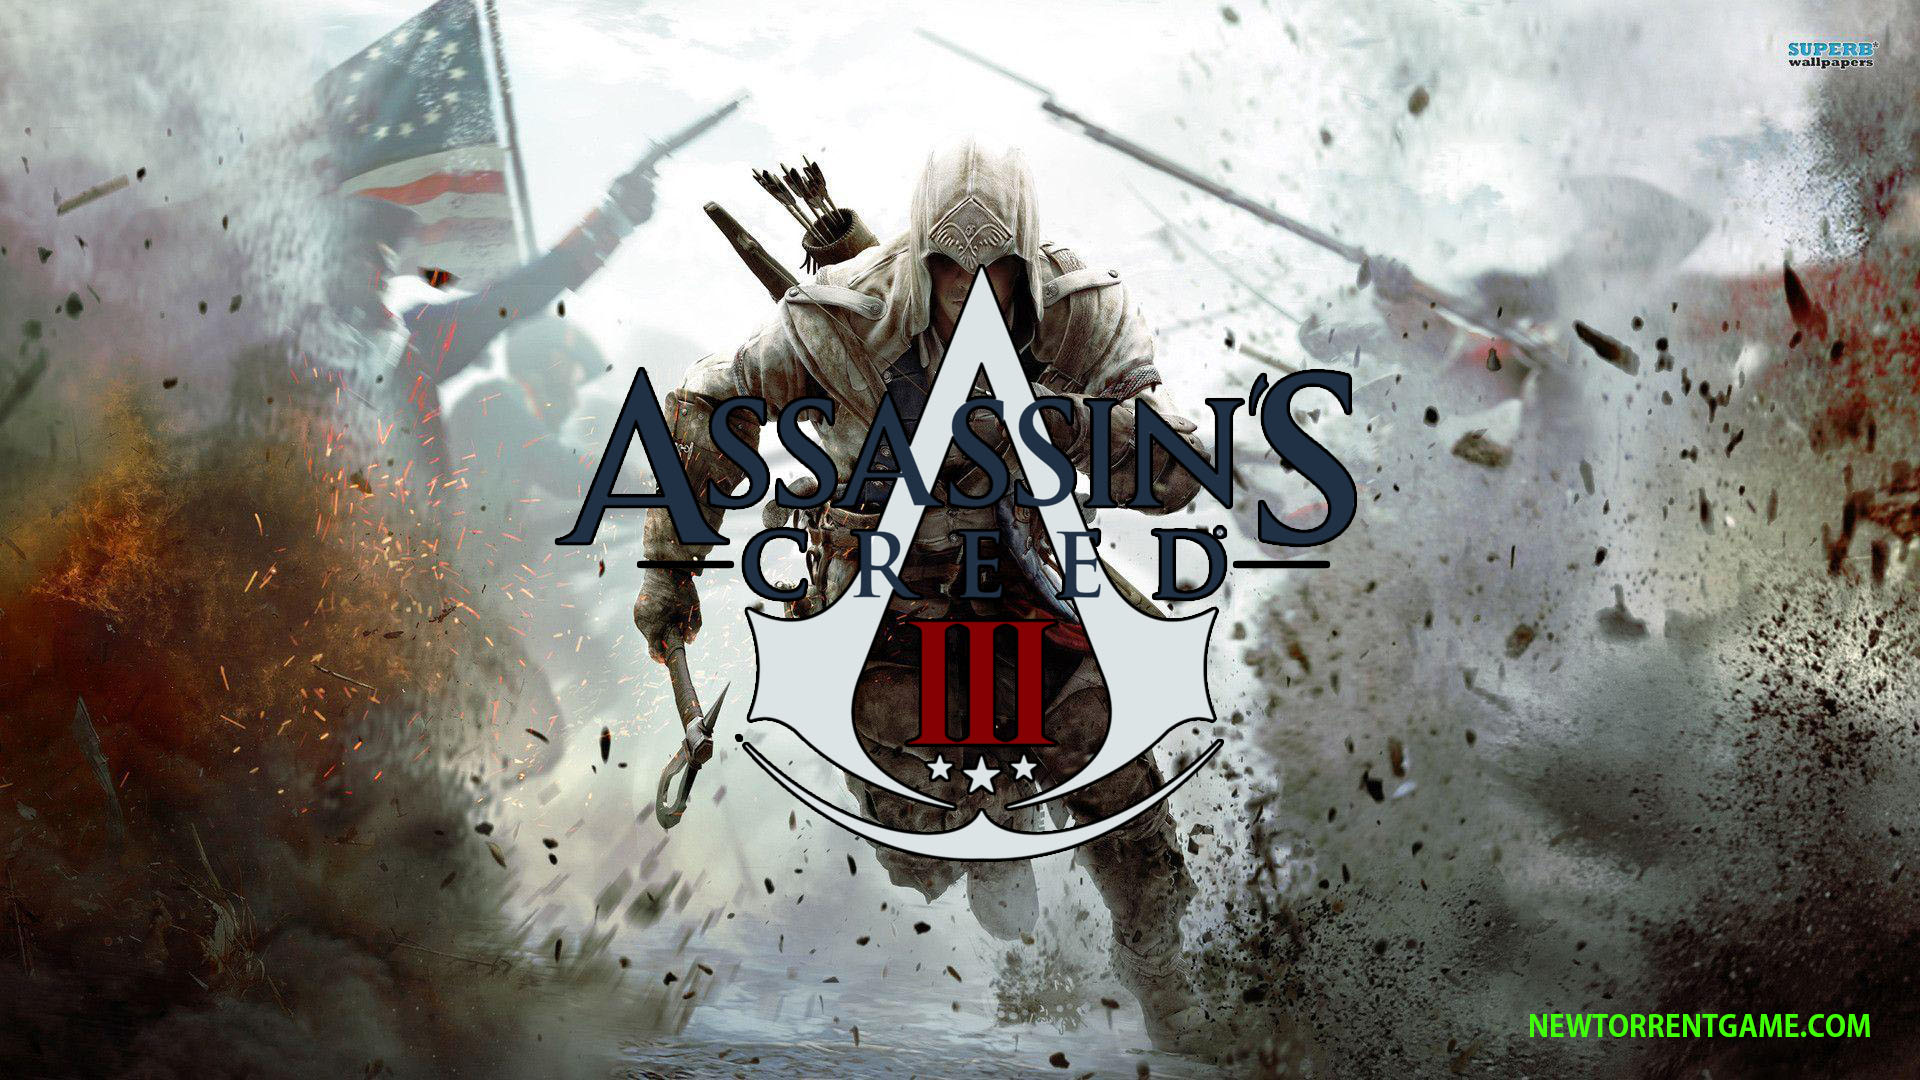 ASSASSINS CREED III torrent